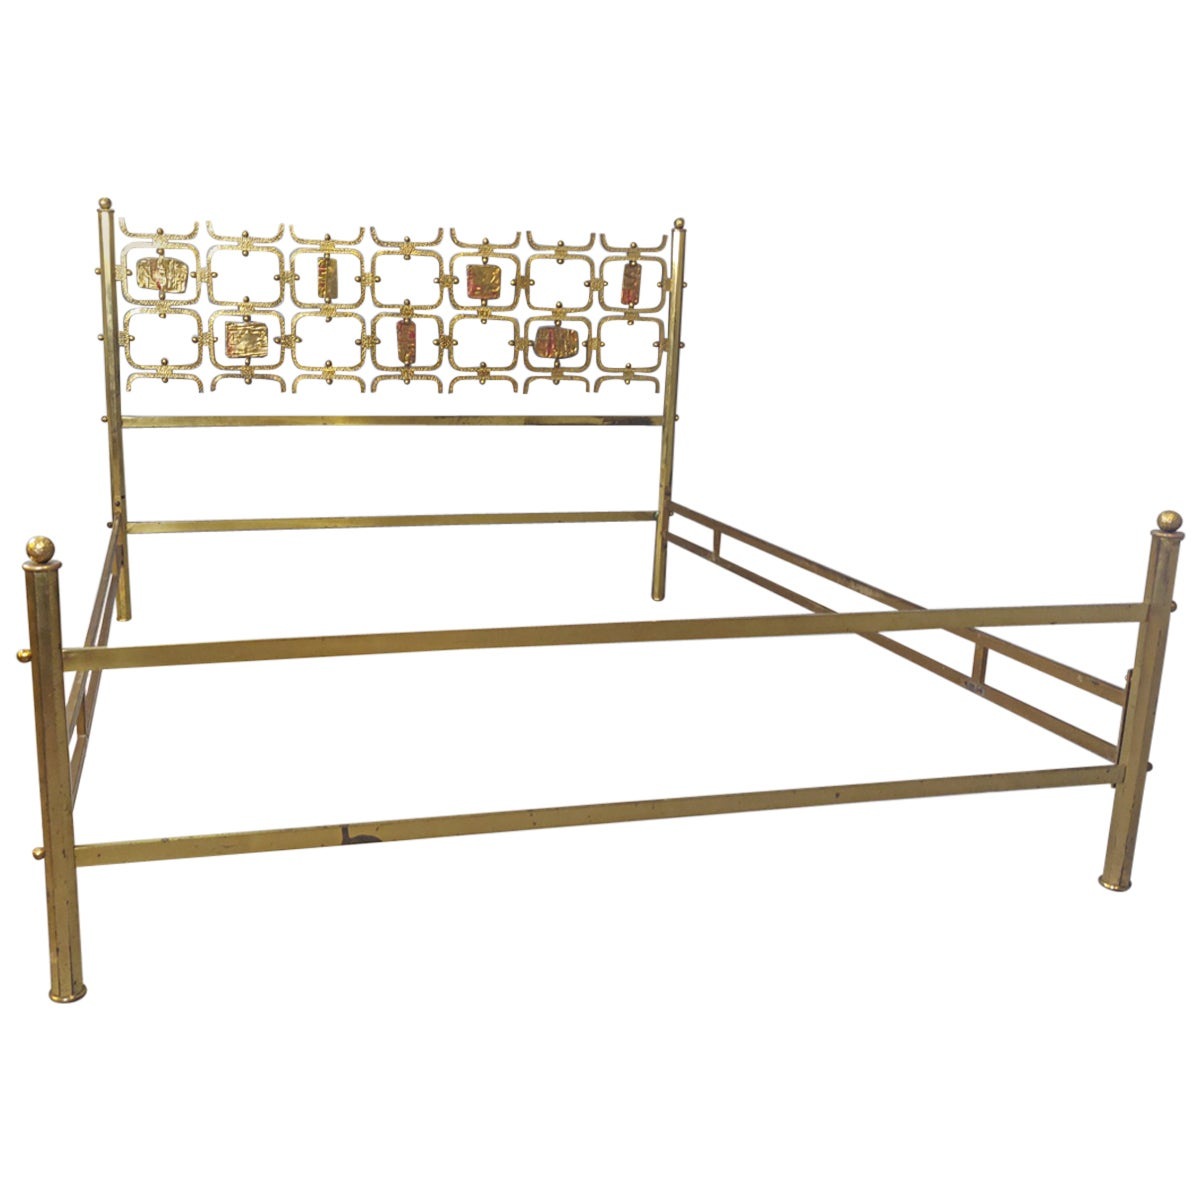 Osvaldo Borsani Brass Double Bed, Italy, 1960s